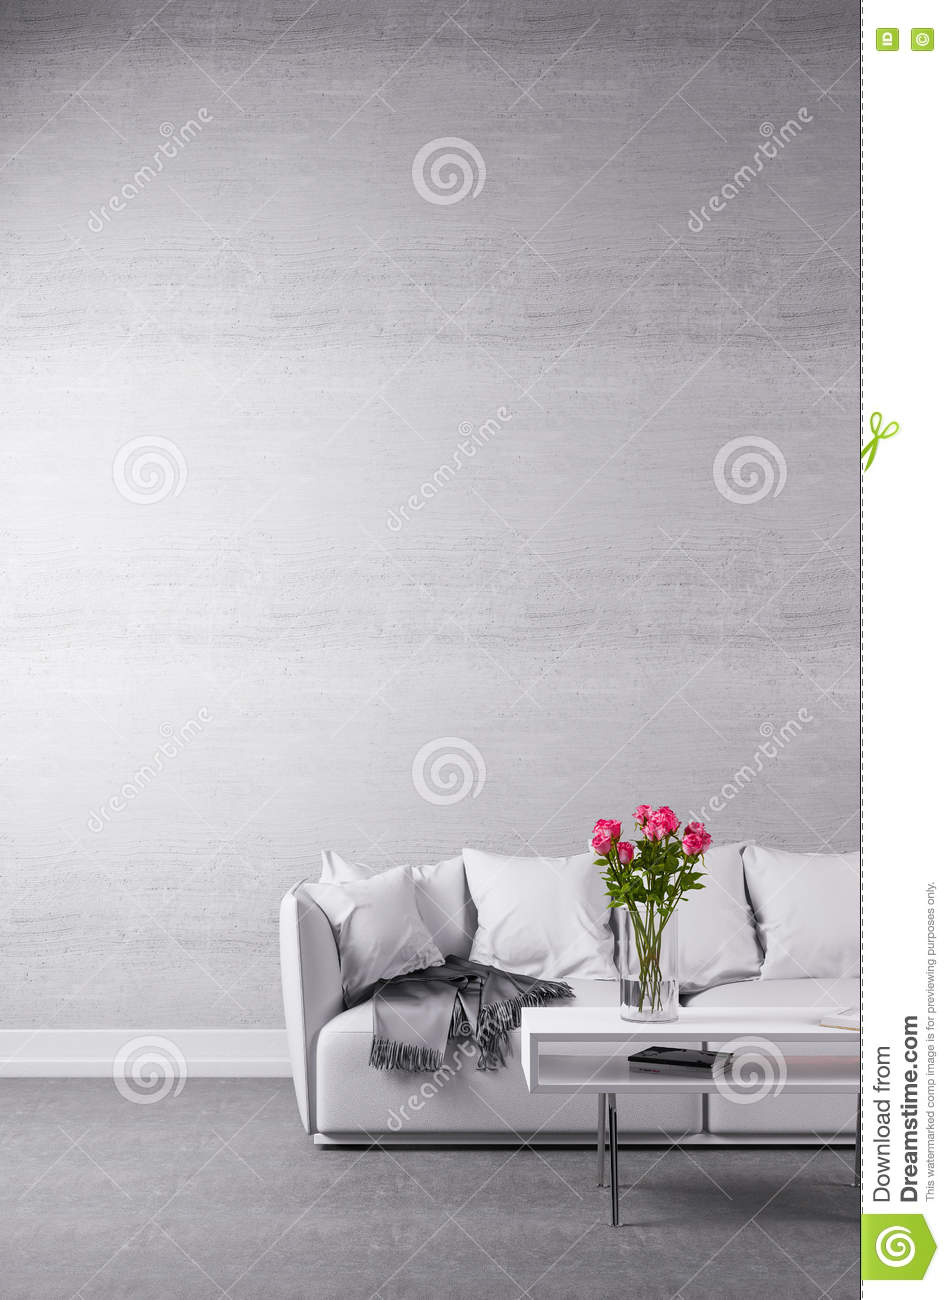 Incredible White Couch In Minimalist Room Stock Image Image Of Table Gamerscity Chair Design For Home Gamerscityorg